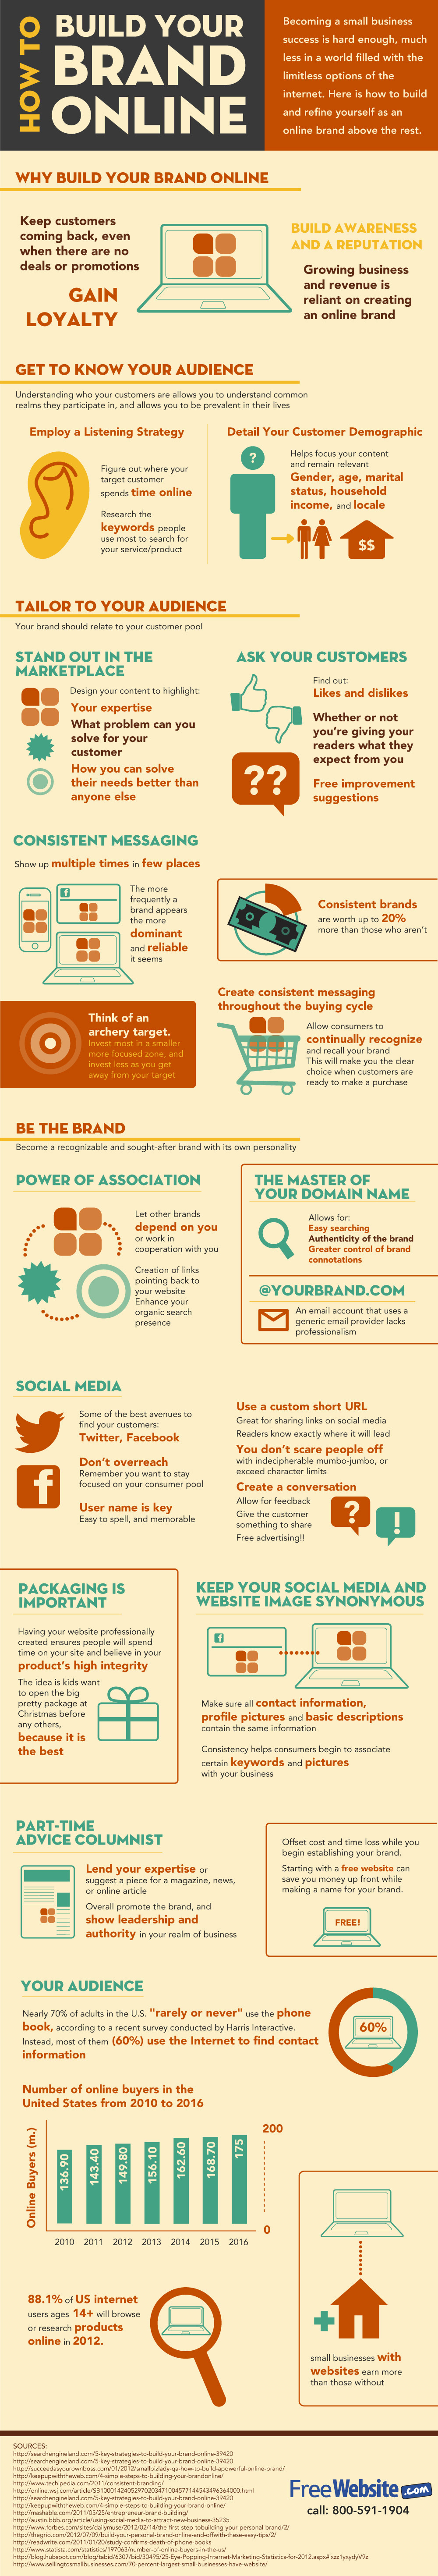 How to build and promote your brand online